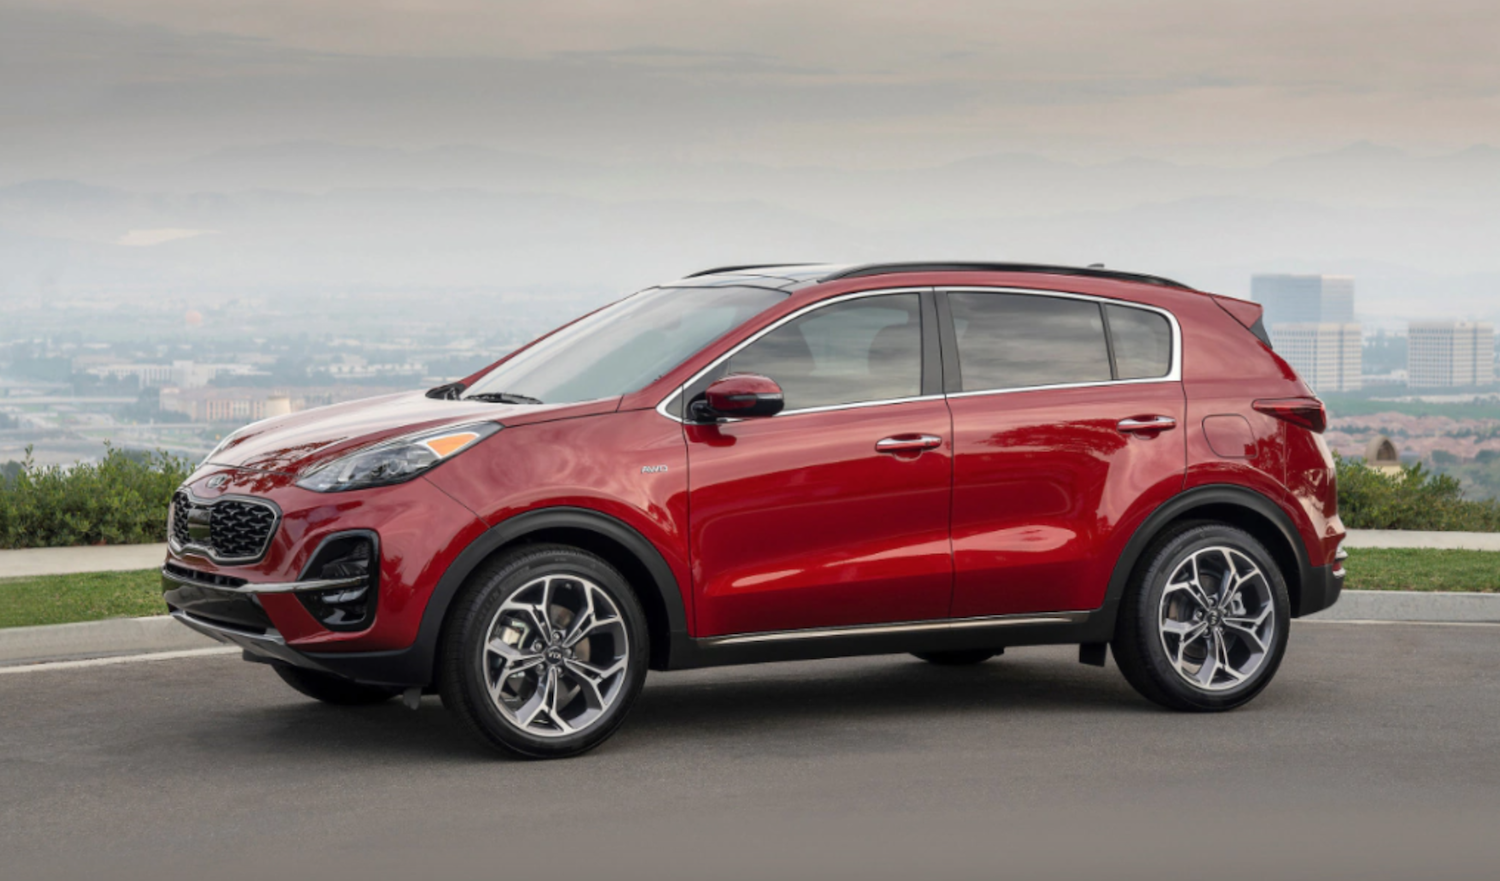 Compare 2021 Kia Sportage Trims